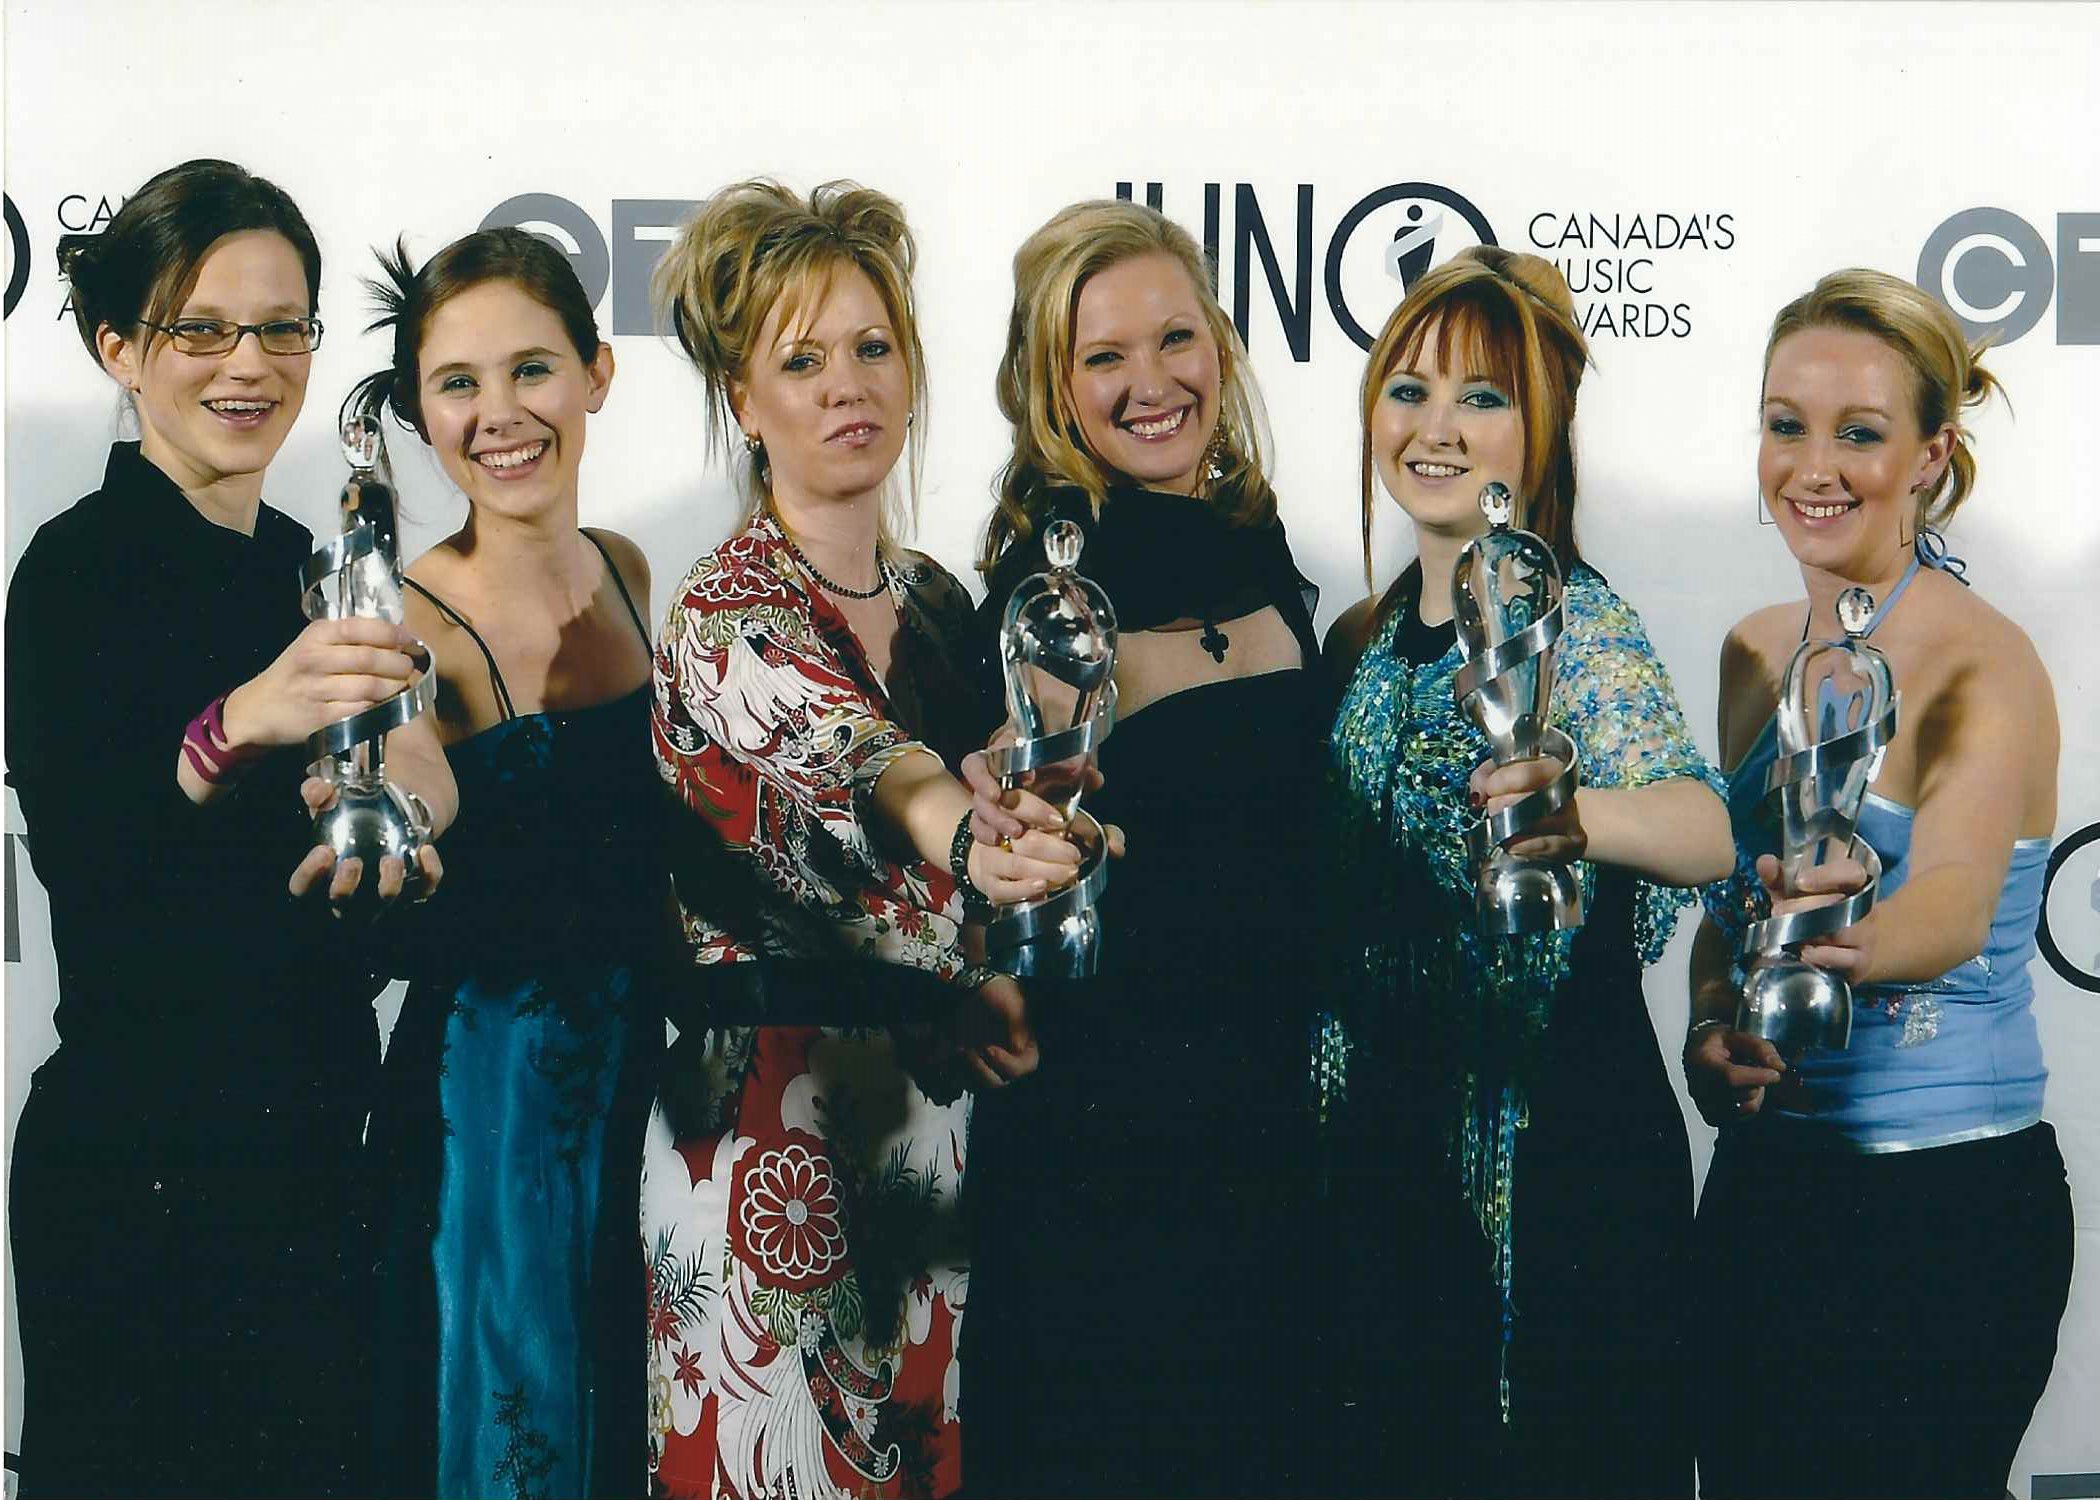 Backstage at the 2004 Juno Awards in Edmonton